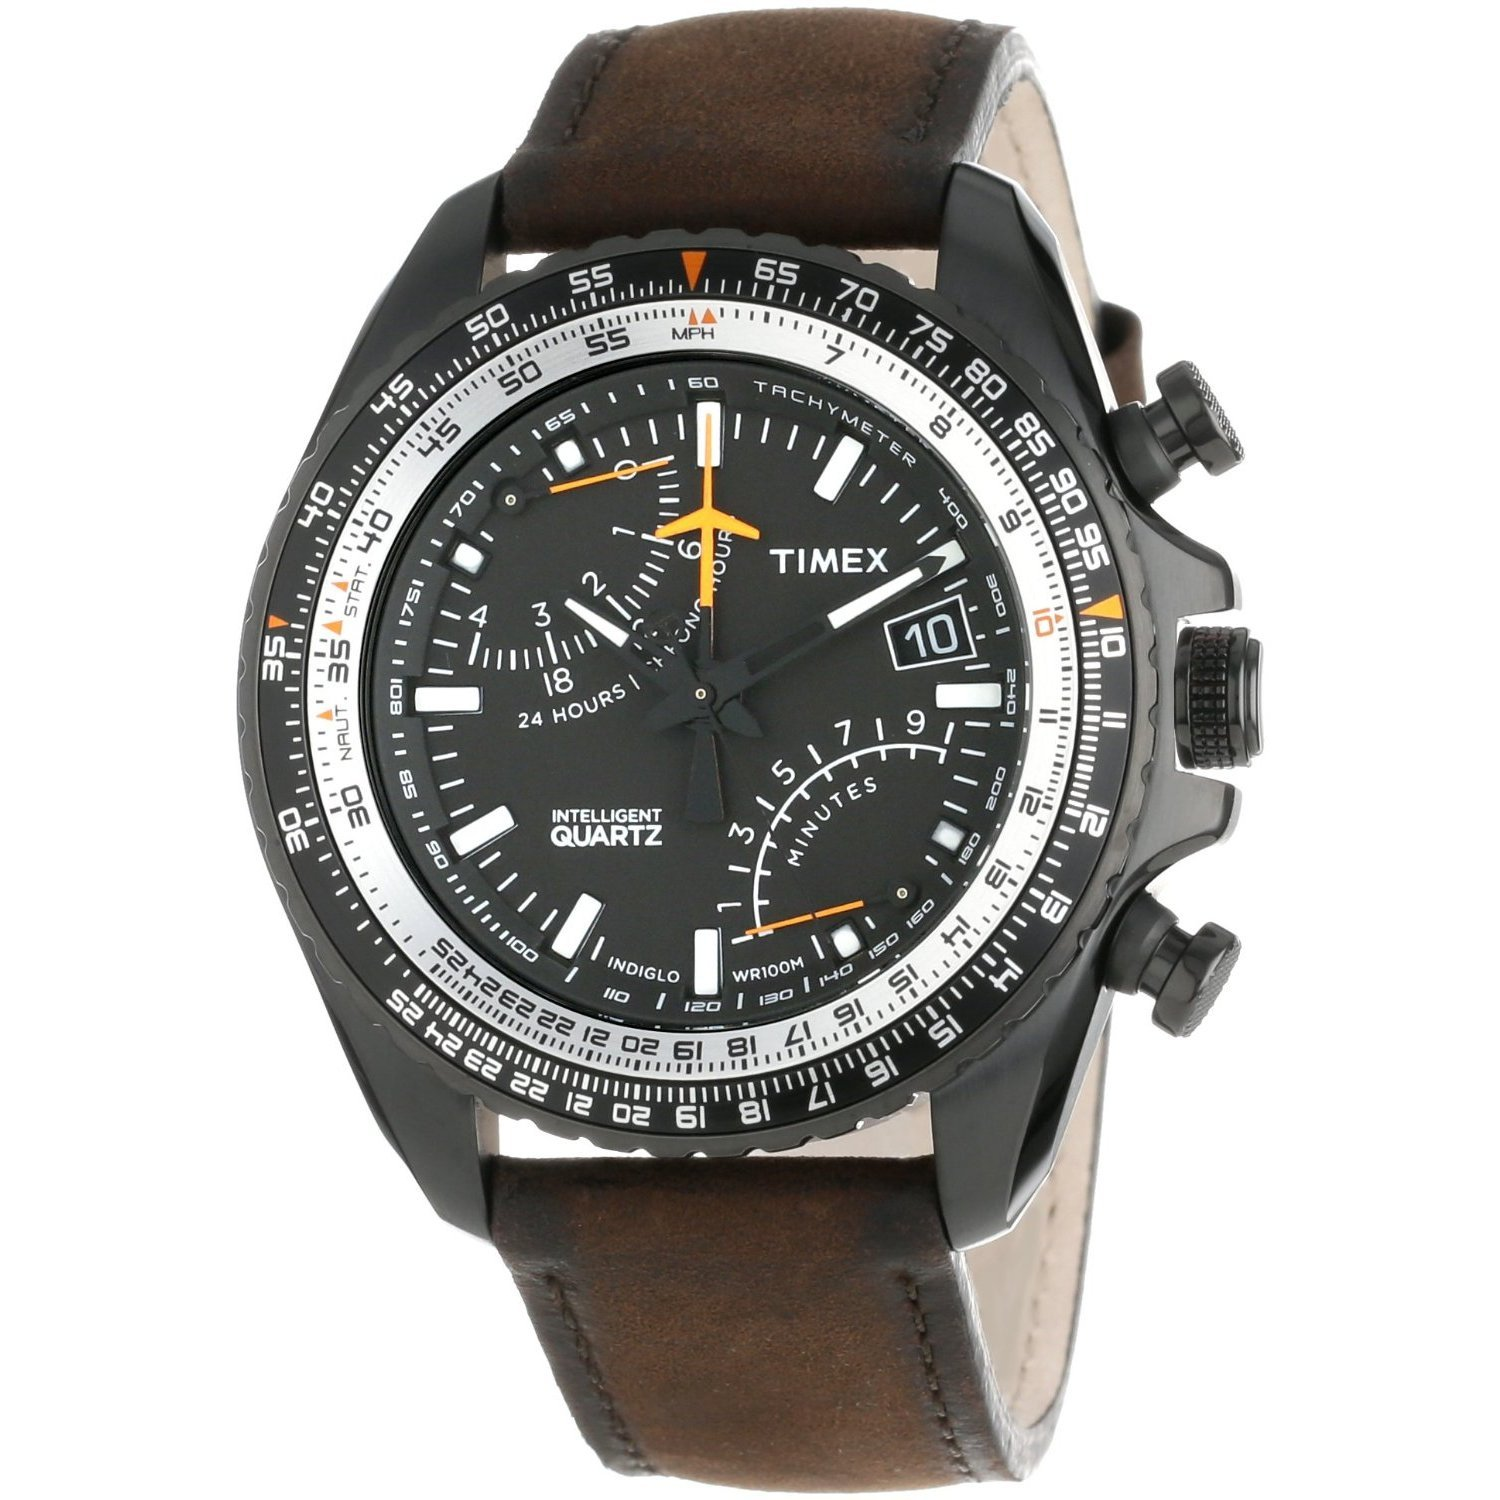 Timex T2P102 IQ Aviator Fly Back Analog Chronograph Watch, Leather